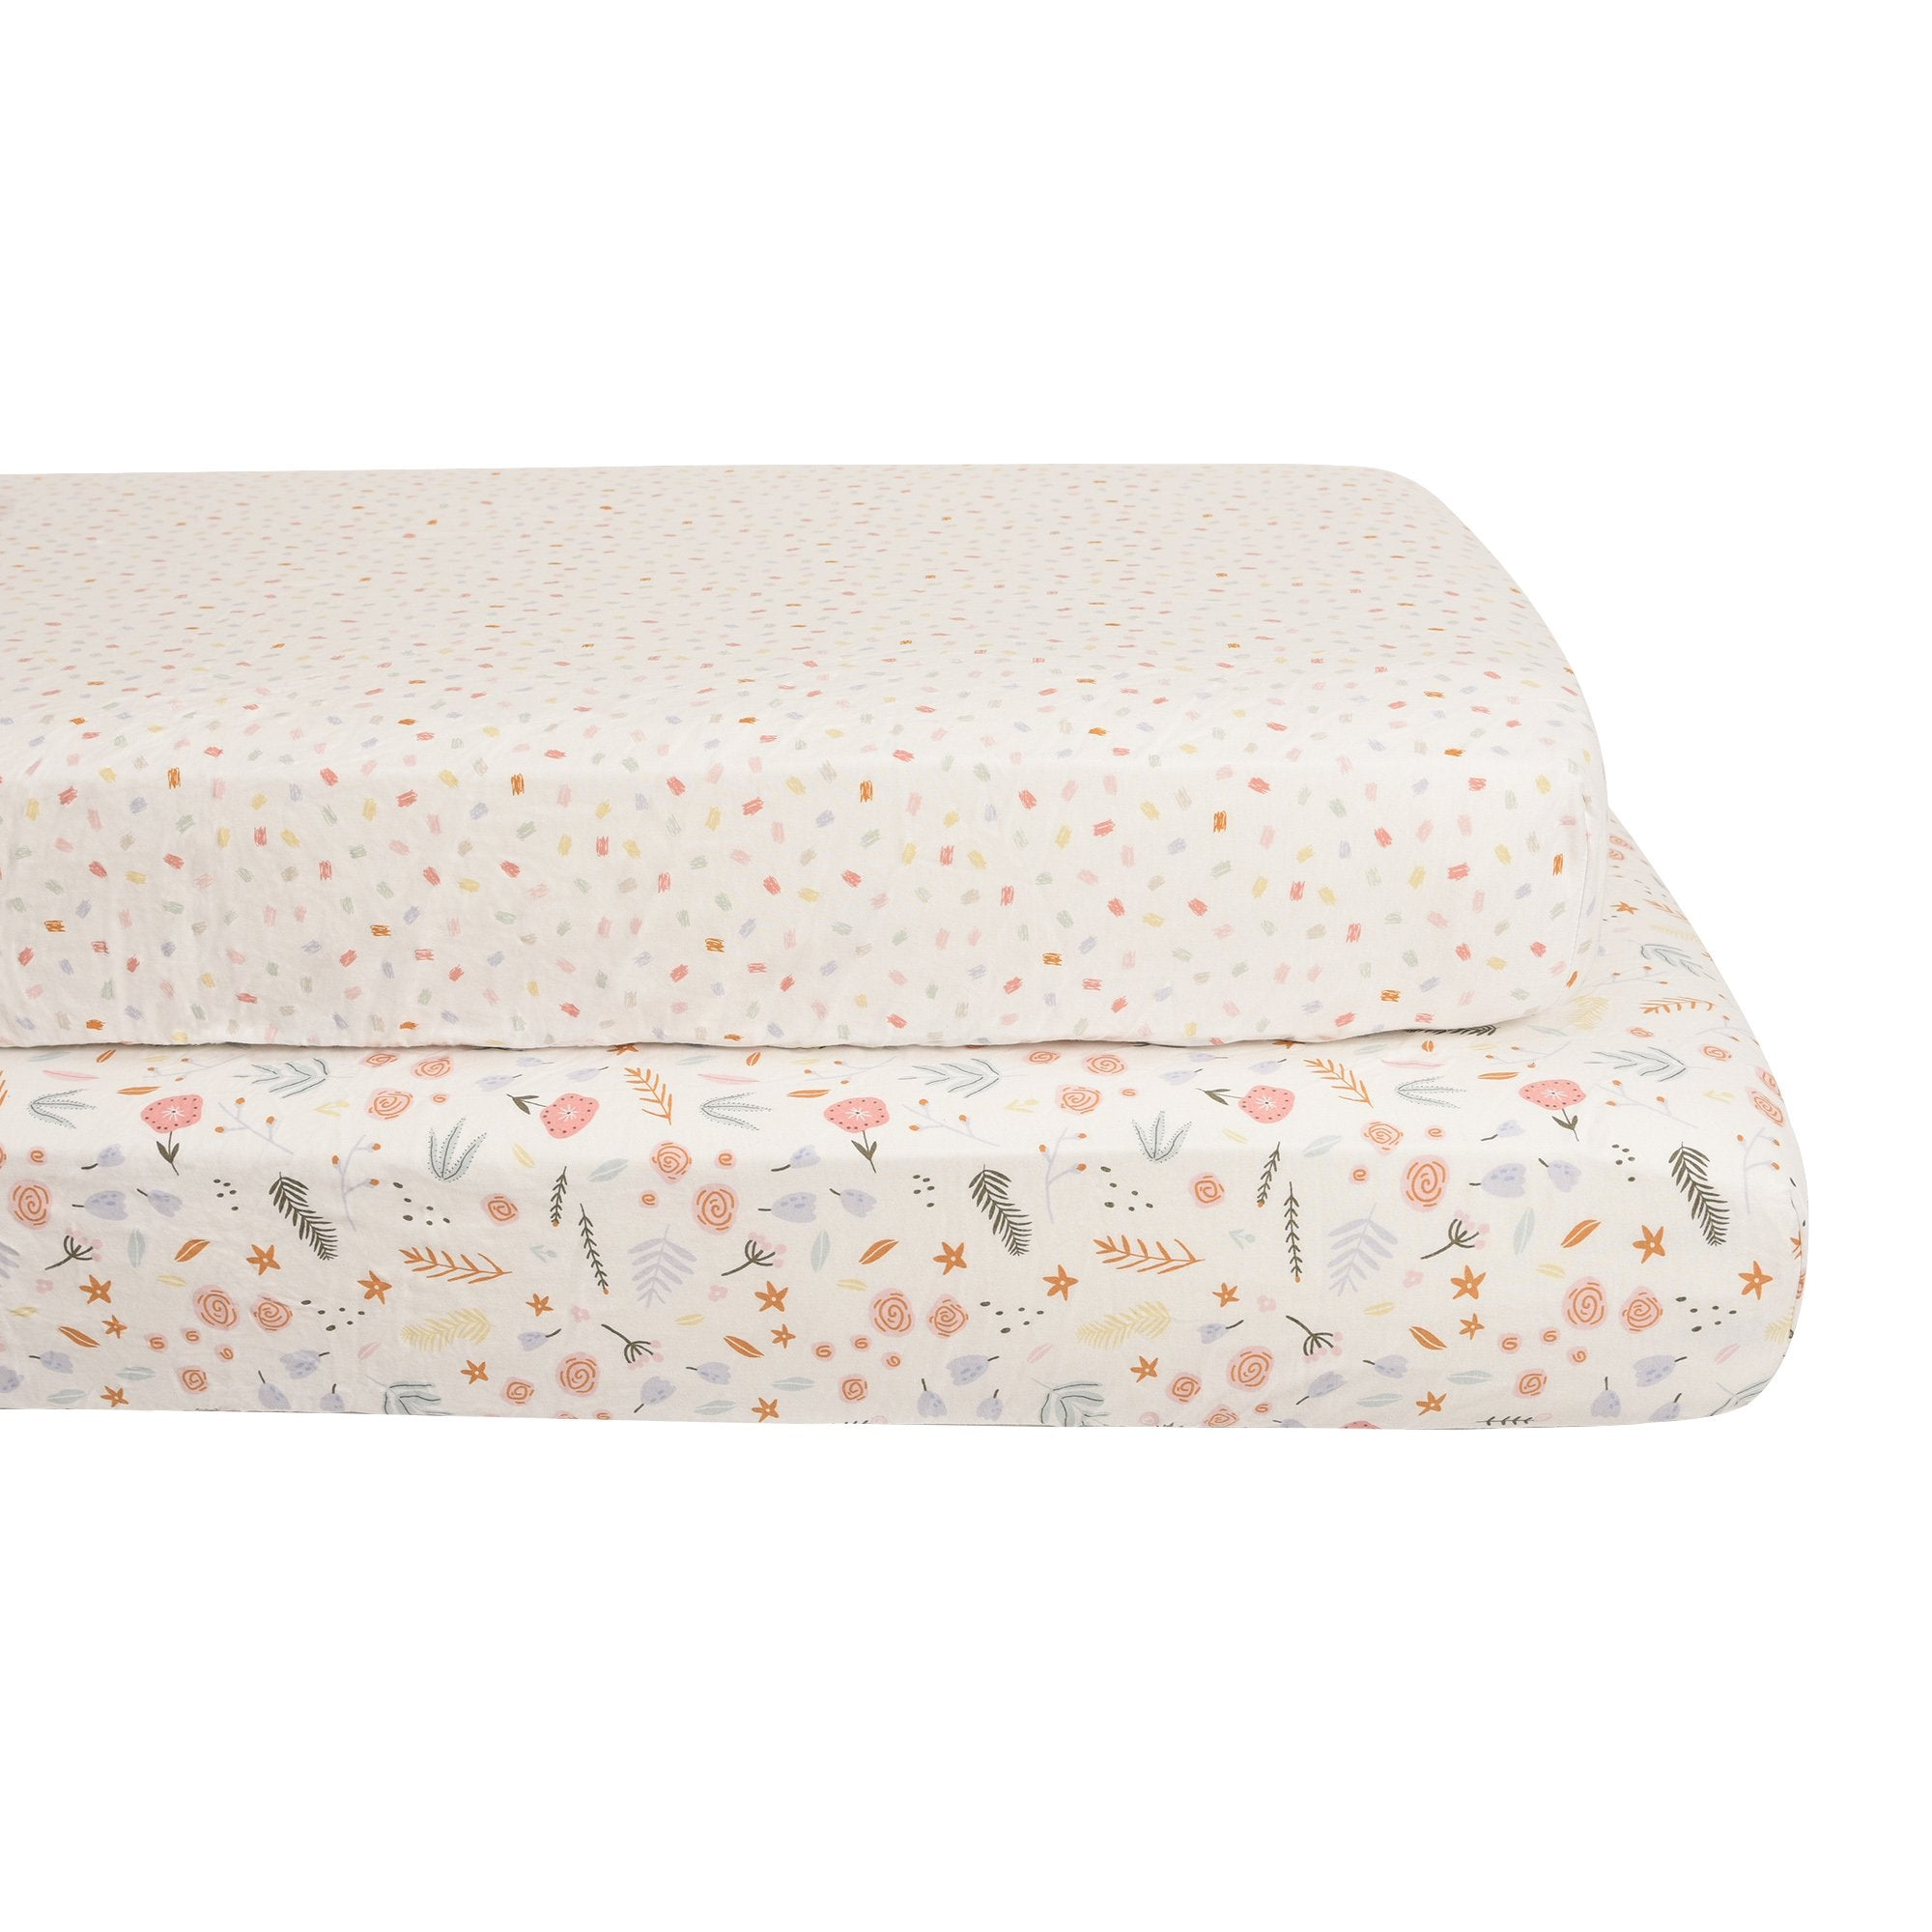 Baby's First by Nemcor 3-Piece Quilted Jersey Blanket and Fitted Sheet Crib Set, Floral